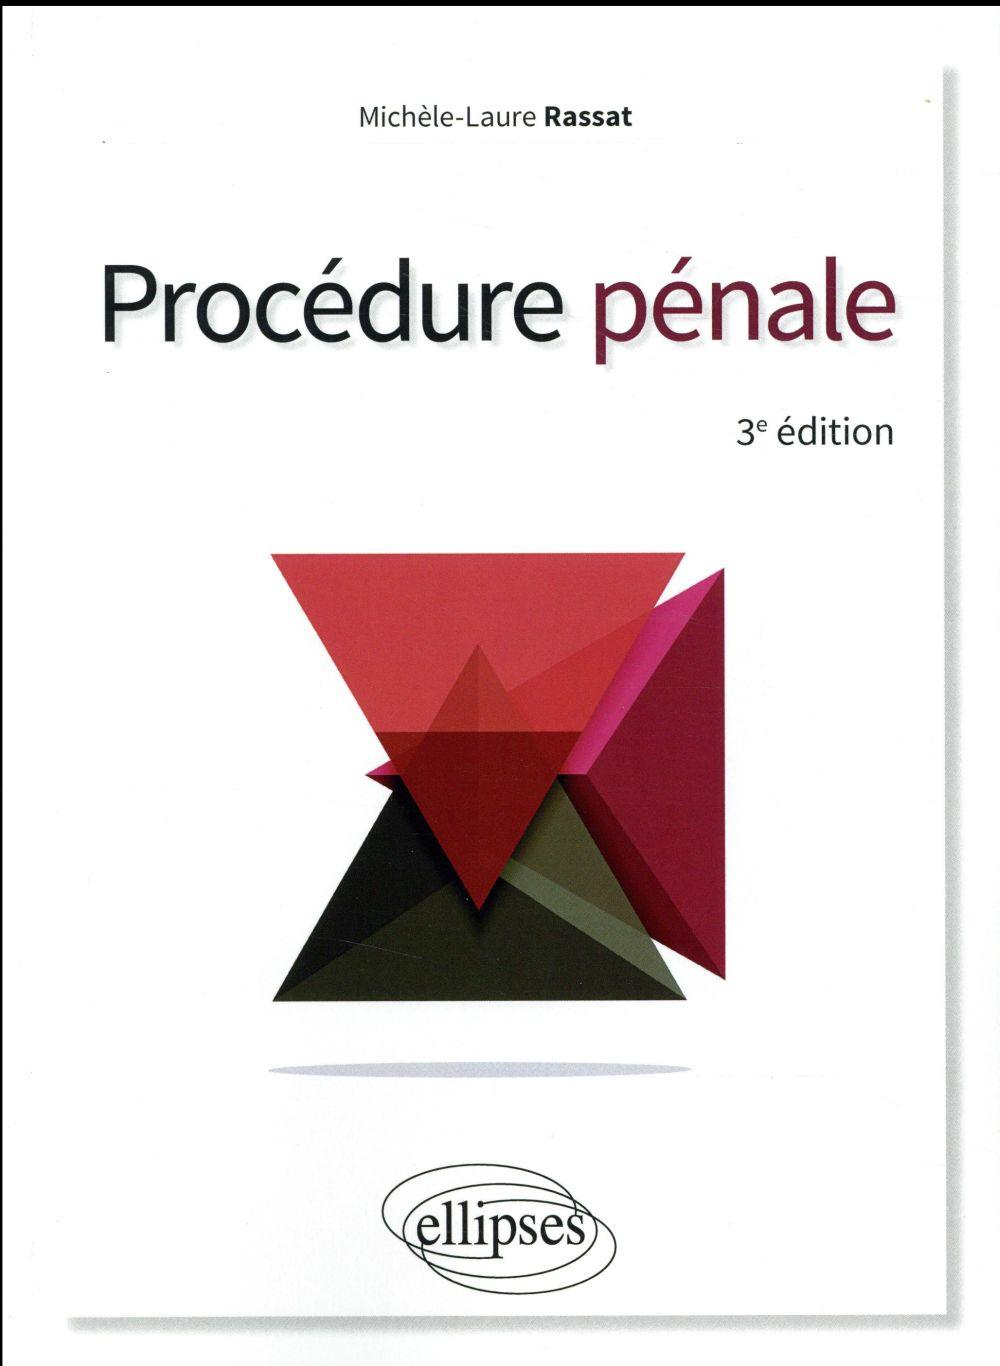 Vente Livre :                                    Procedure penale 3eme edition                                      - Rassat